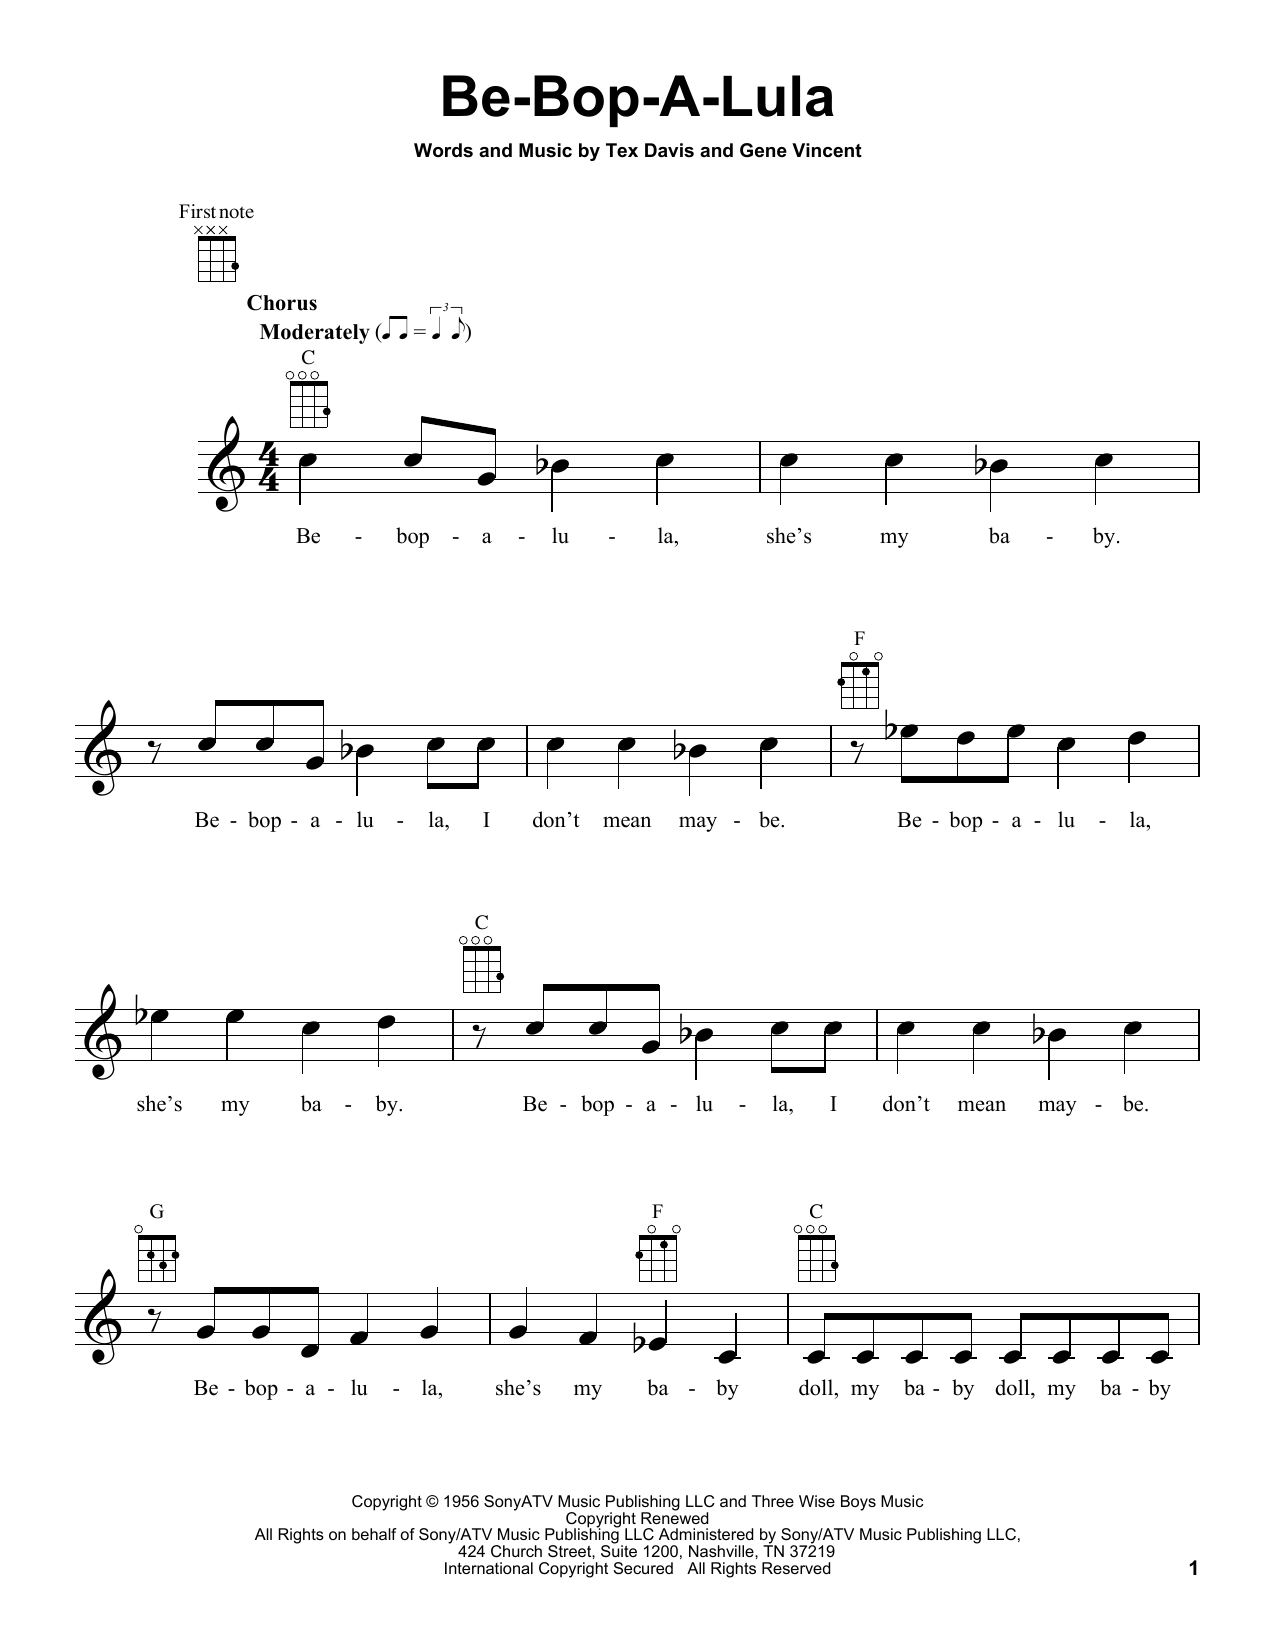 Be-Bop-A-Lula Sheet Music